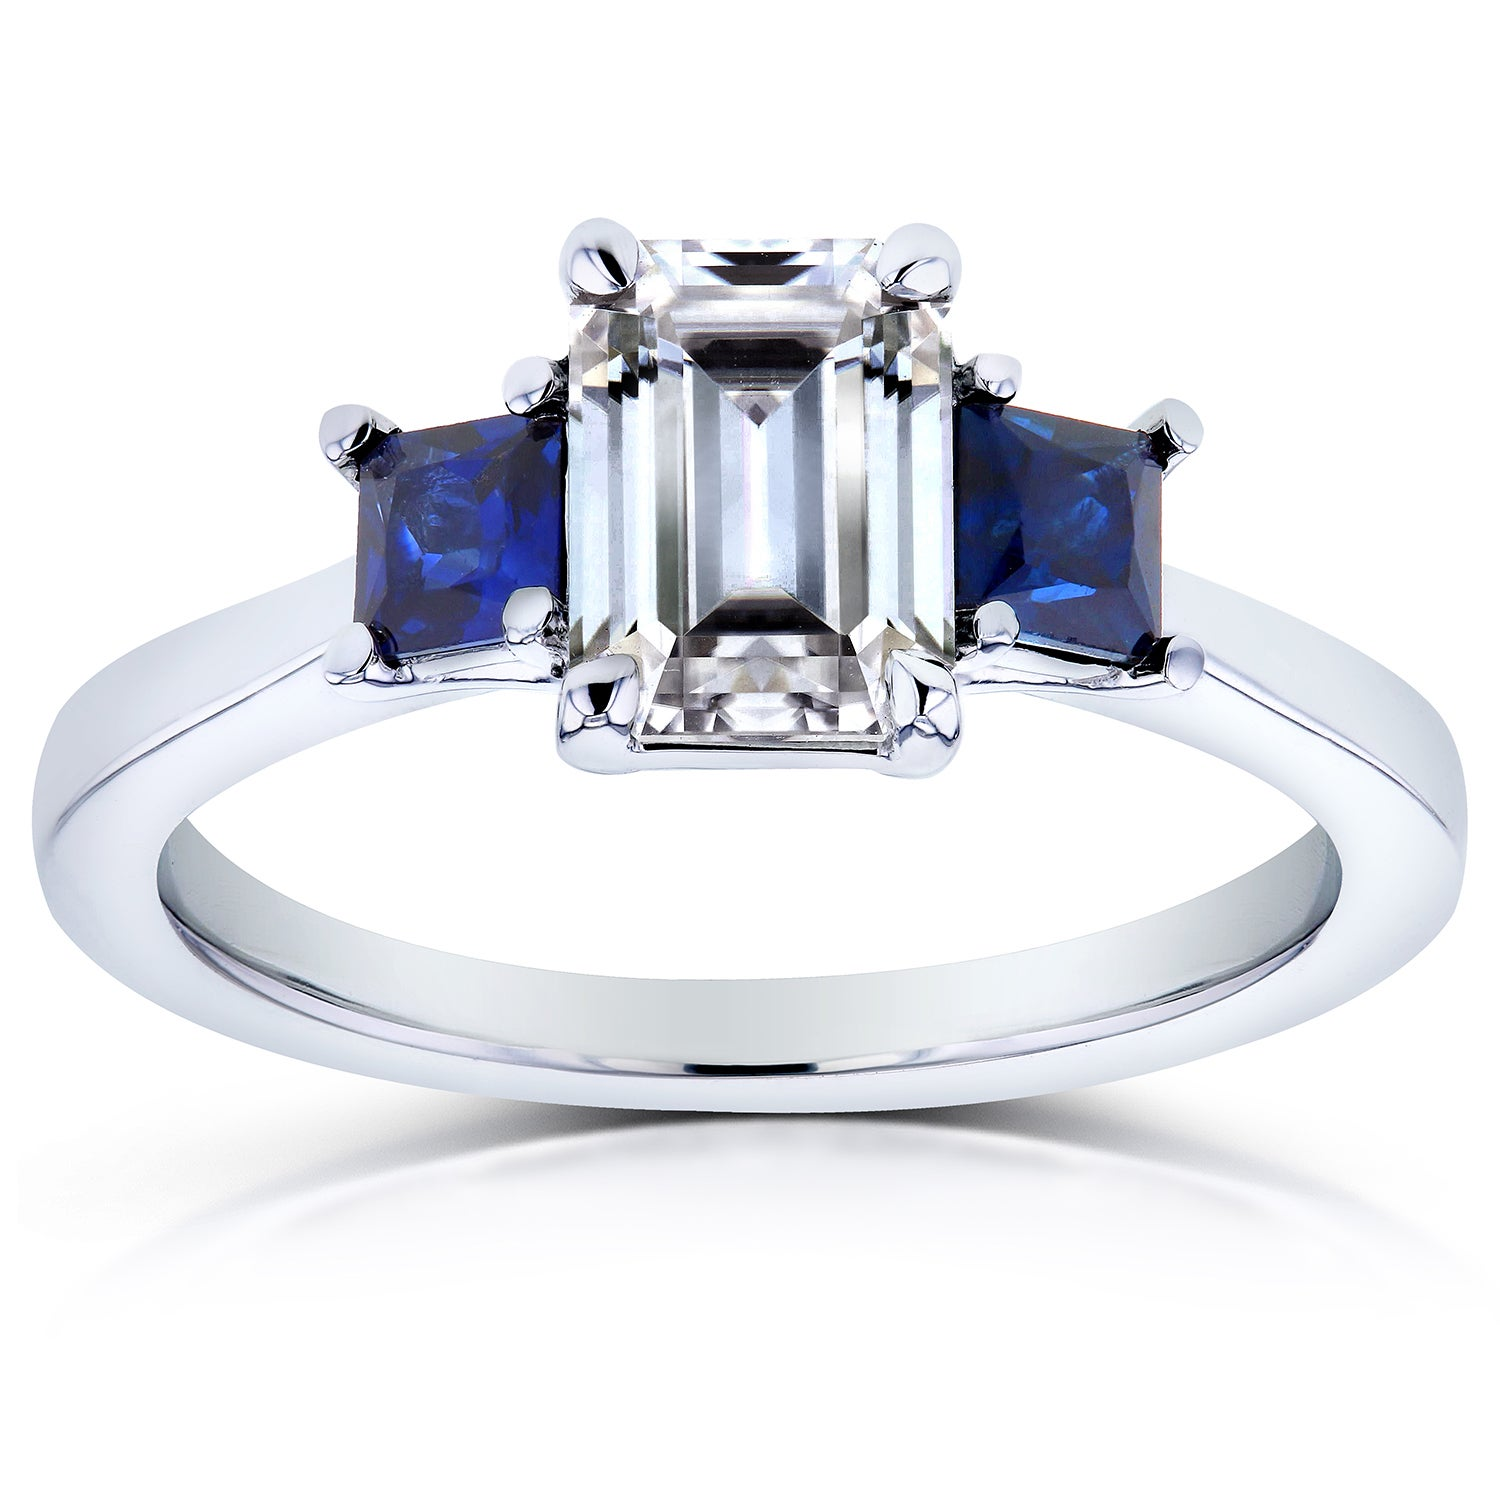 c752cb578df0e1 Annello by Kobelli 14k White Gold Emerald Cut Three Stone Moissanite and Blue  Sapphire, Diamond Accented Engagement Ring